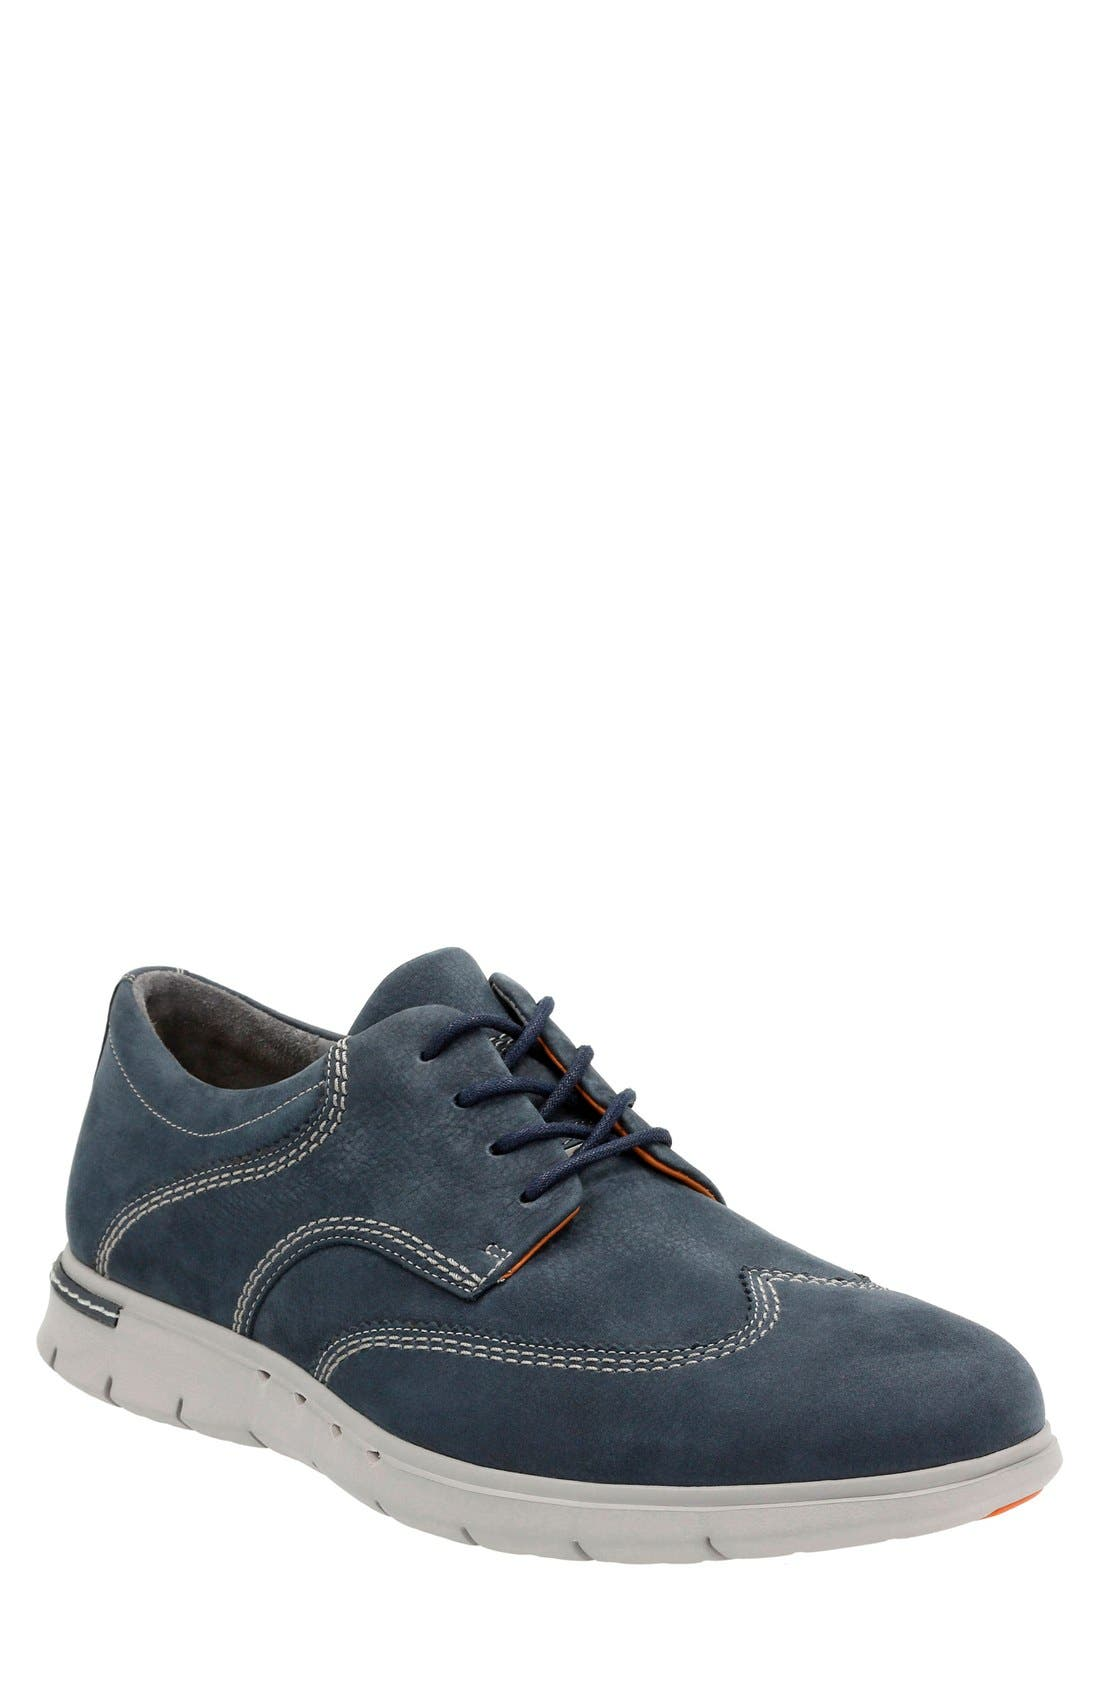 CLARKS<SUP>®</SUP> Unstructured - Byner Way Wingtip Oxford